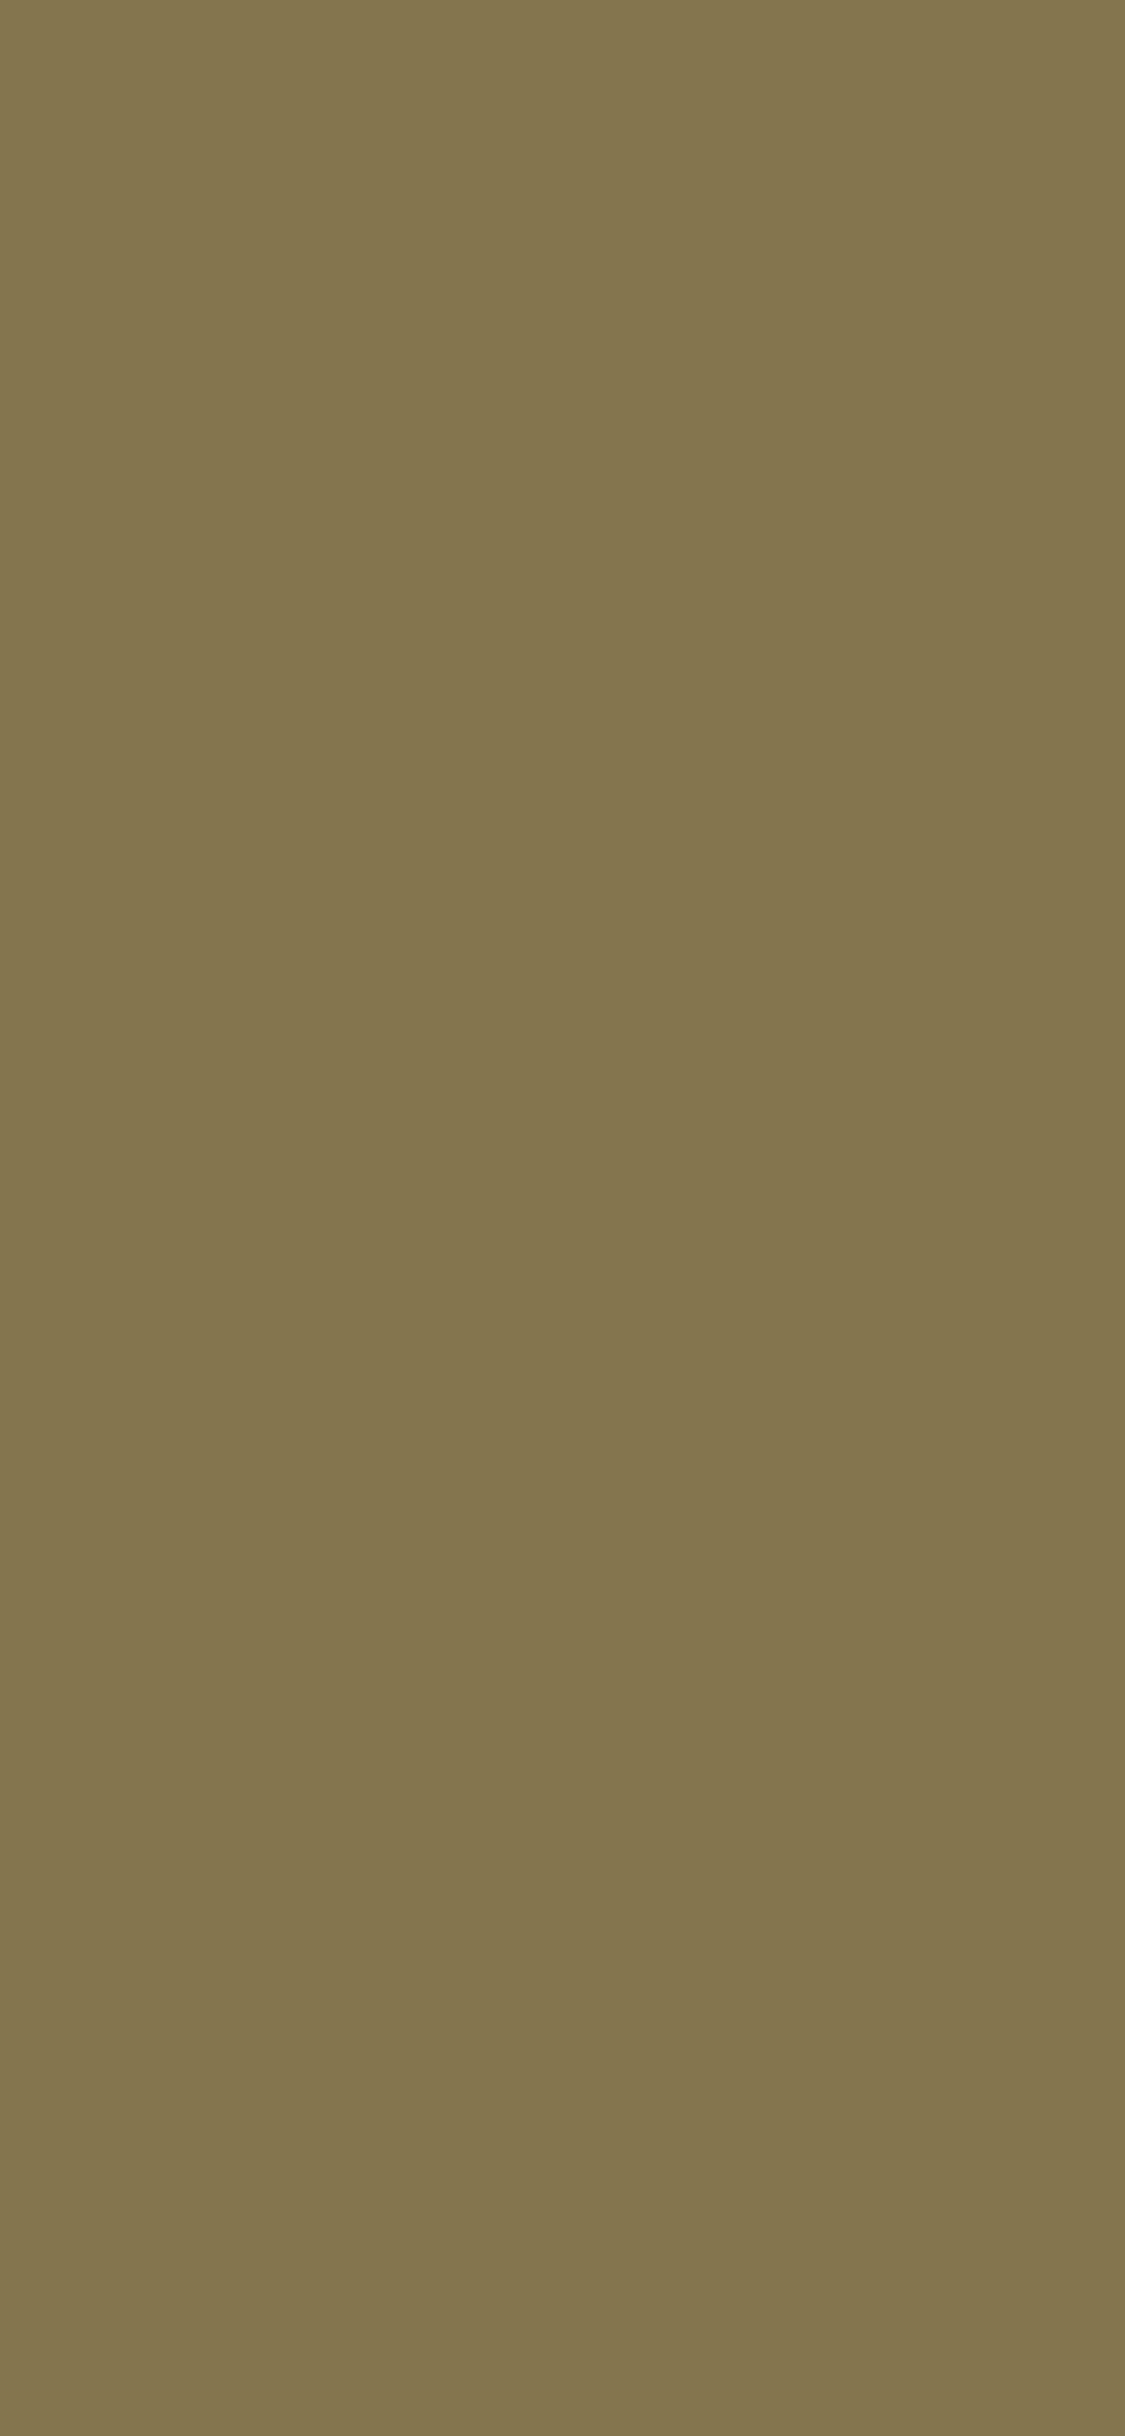 1125x2436 Gold Fusion Solid Color Background